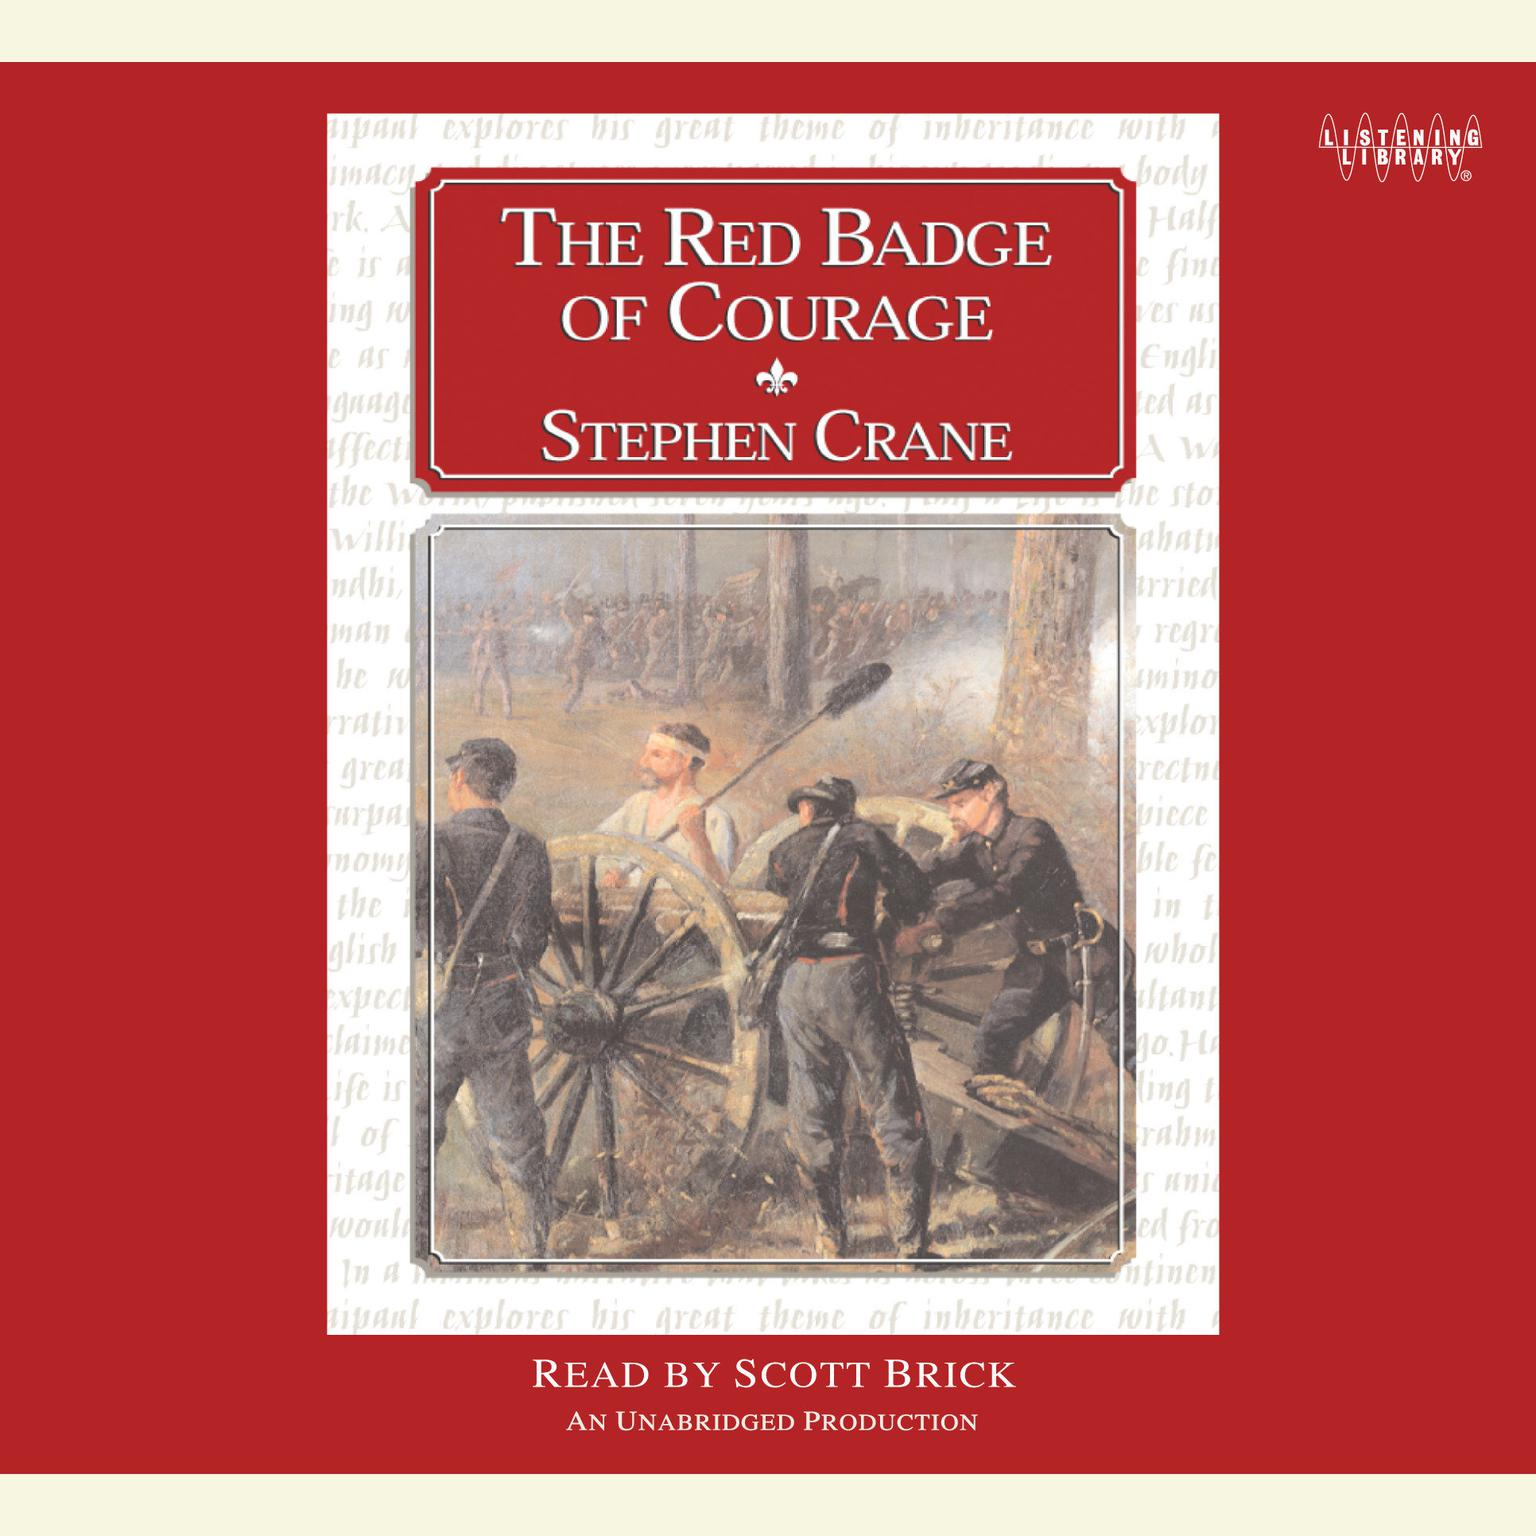 an overview of the red badge of courage By stephen crane follow the trials and tribulations of henry fleming, a recruit in the american civil war in this impressionistic novel by american writer stephen crane considered one of the most influential war stories every written, the red badge of courage was published in 1895, a full thirty years after the american civil war had.